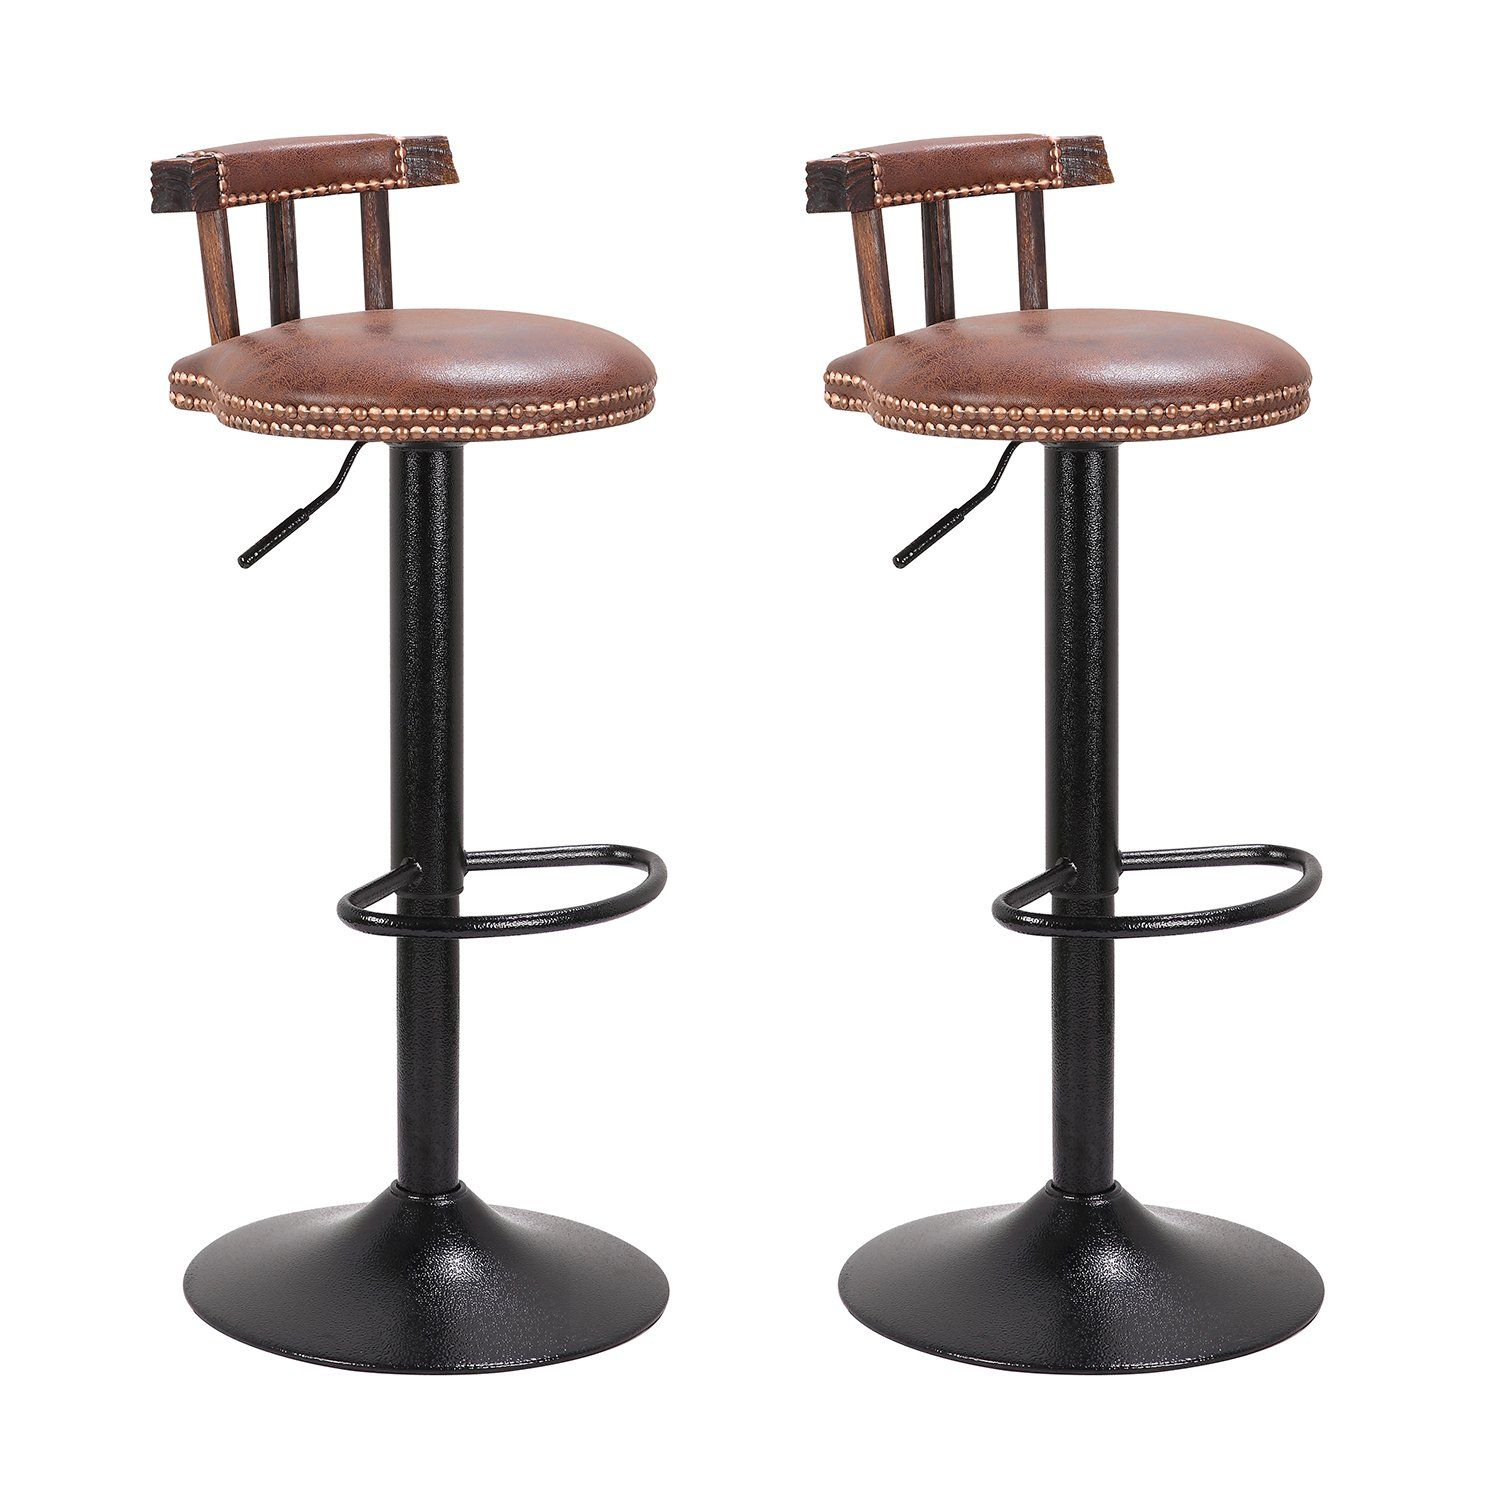 shopping with find get top wooden inch quotations short at of counter asense two on guides set cheap metal line deals stools stool